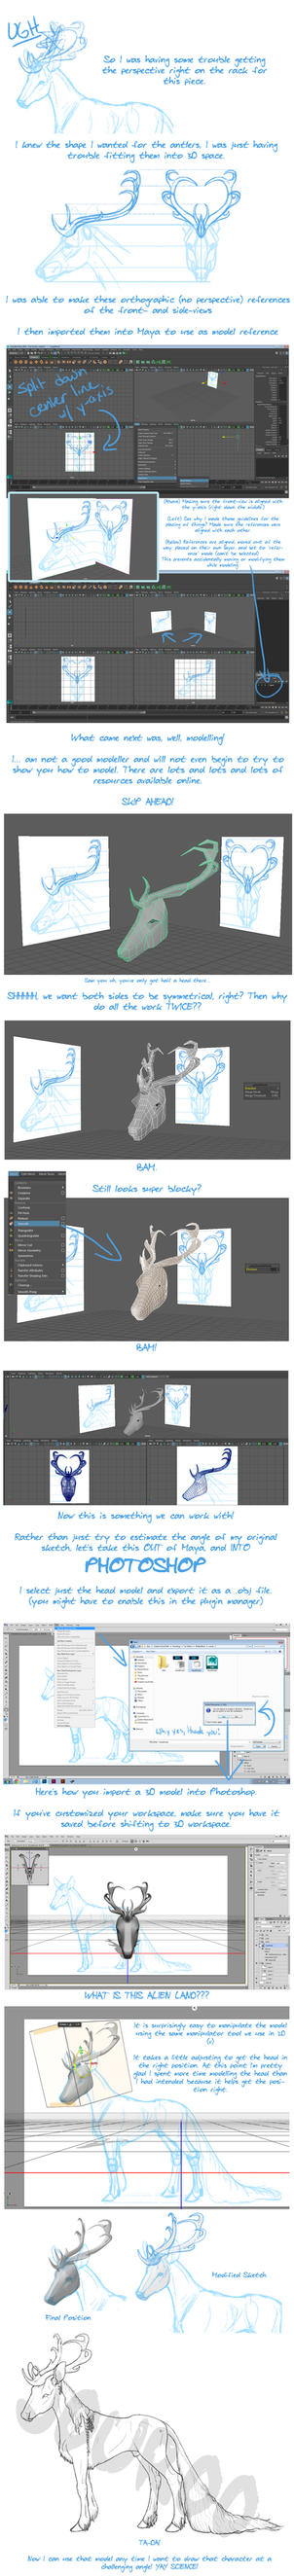 Using a 3D Reference Model - Walkthrough by jouroo